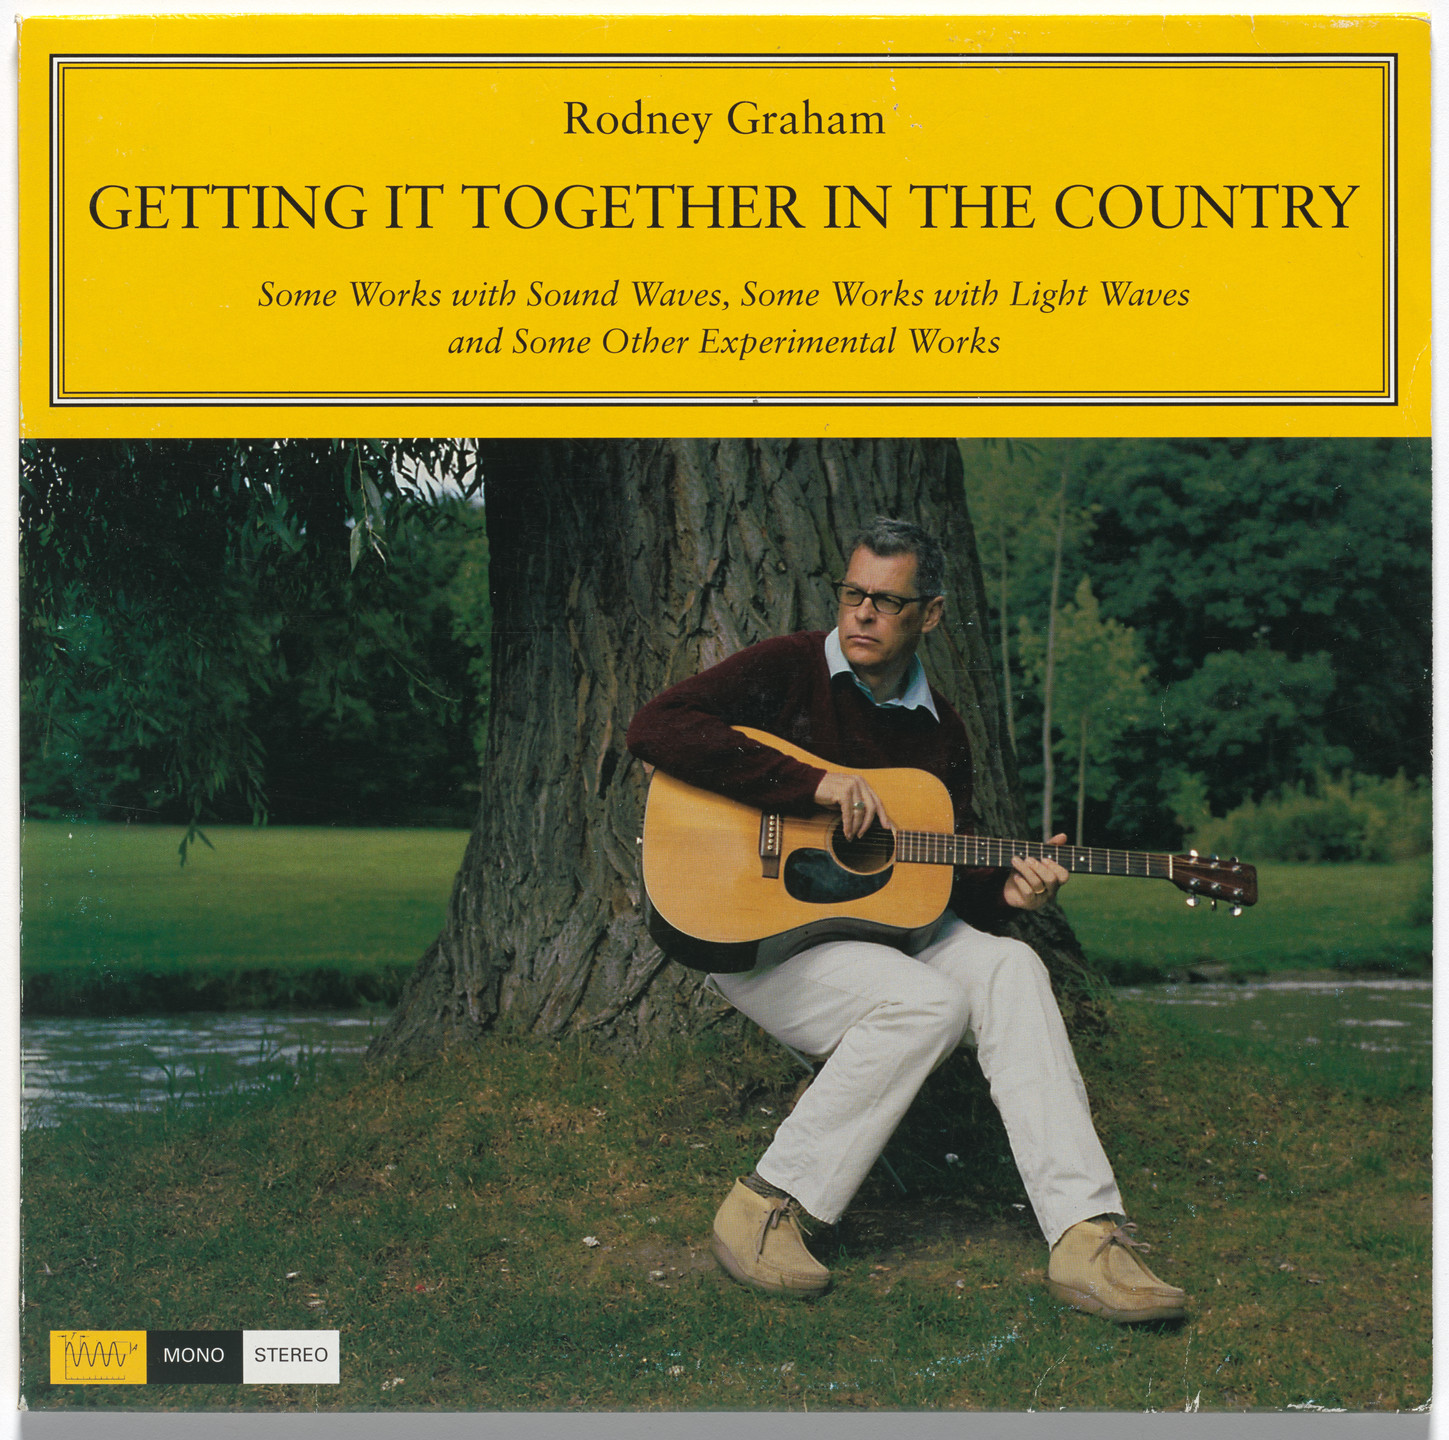 Rodney Graham. Getting it Together in the Country. 2000